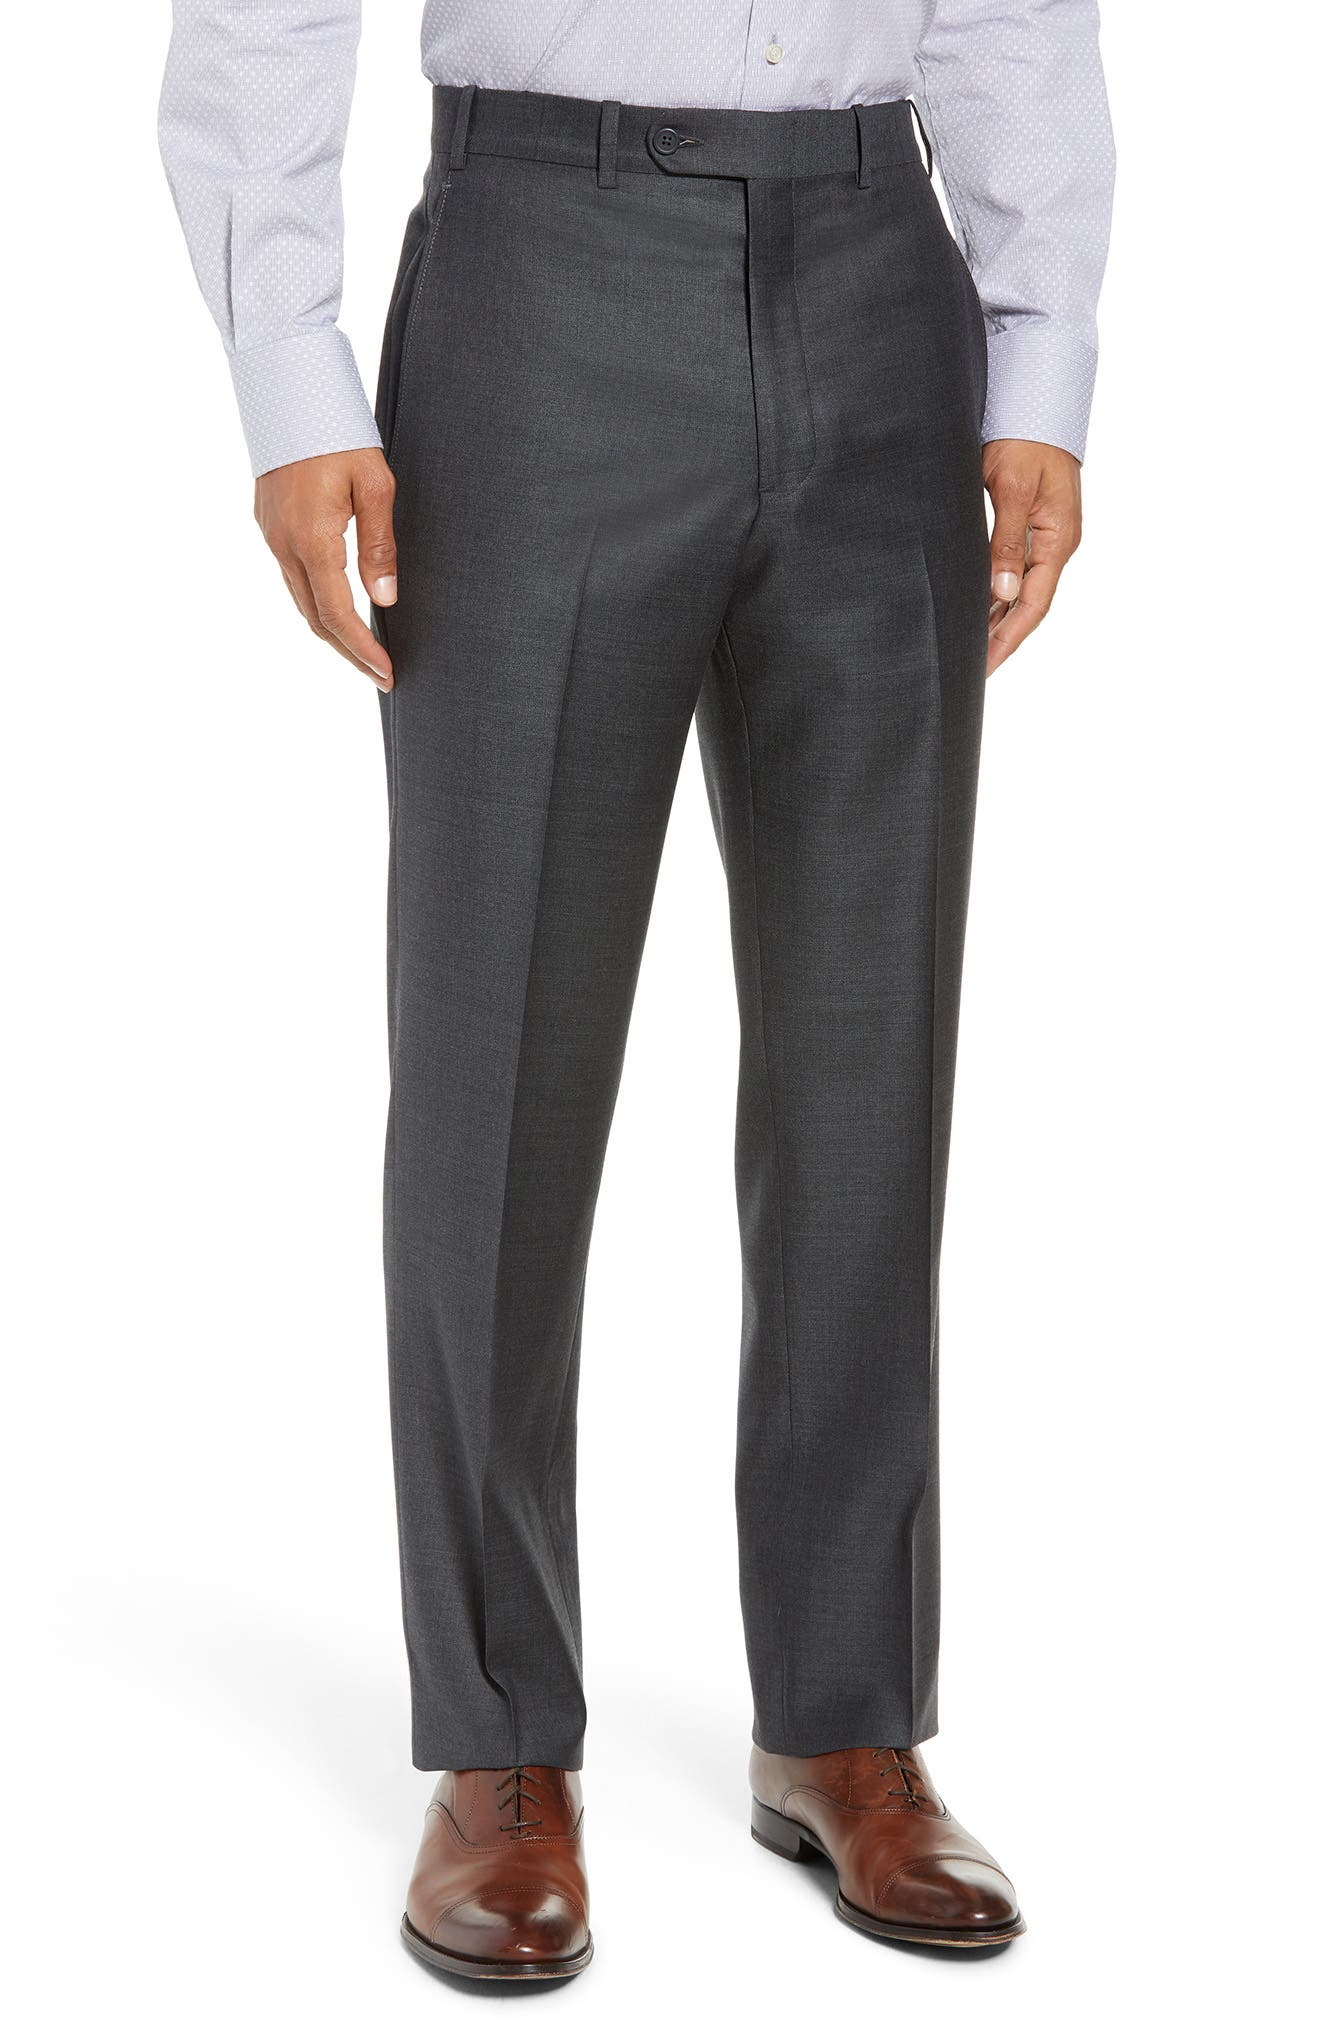 Torino Flat Front Solid Wool Trousers,                             Main thumbnail 1, color,                             Charcoal